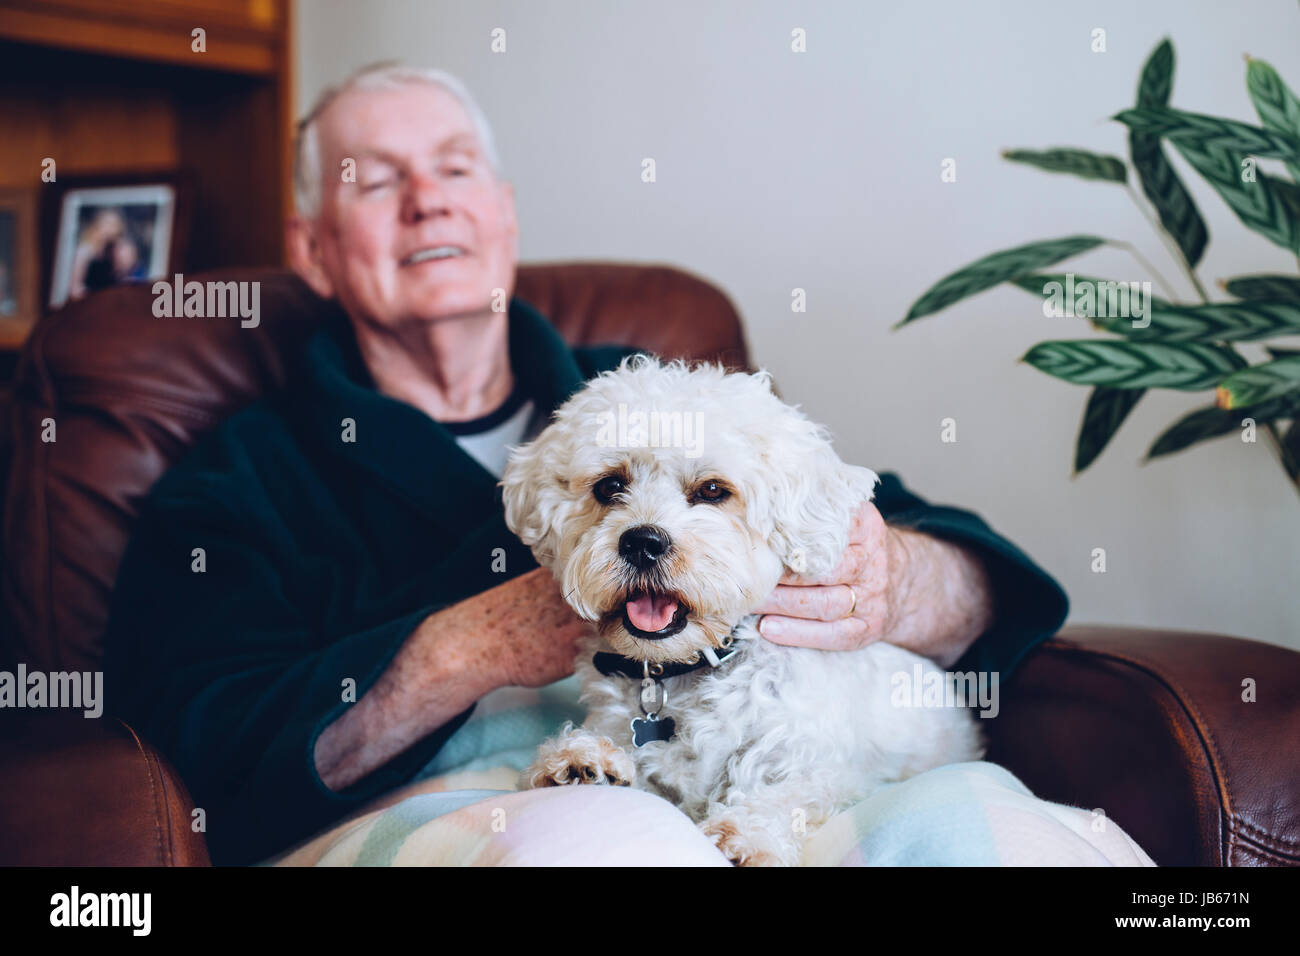 Senior man sitting at home with his pet Shih Tzu dog on his knee. - Stock Image